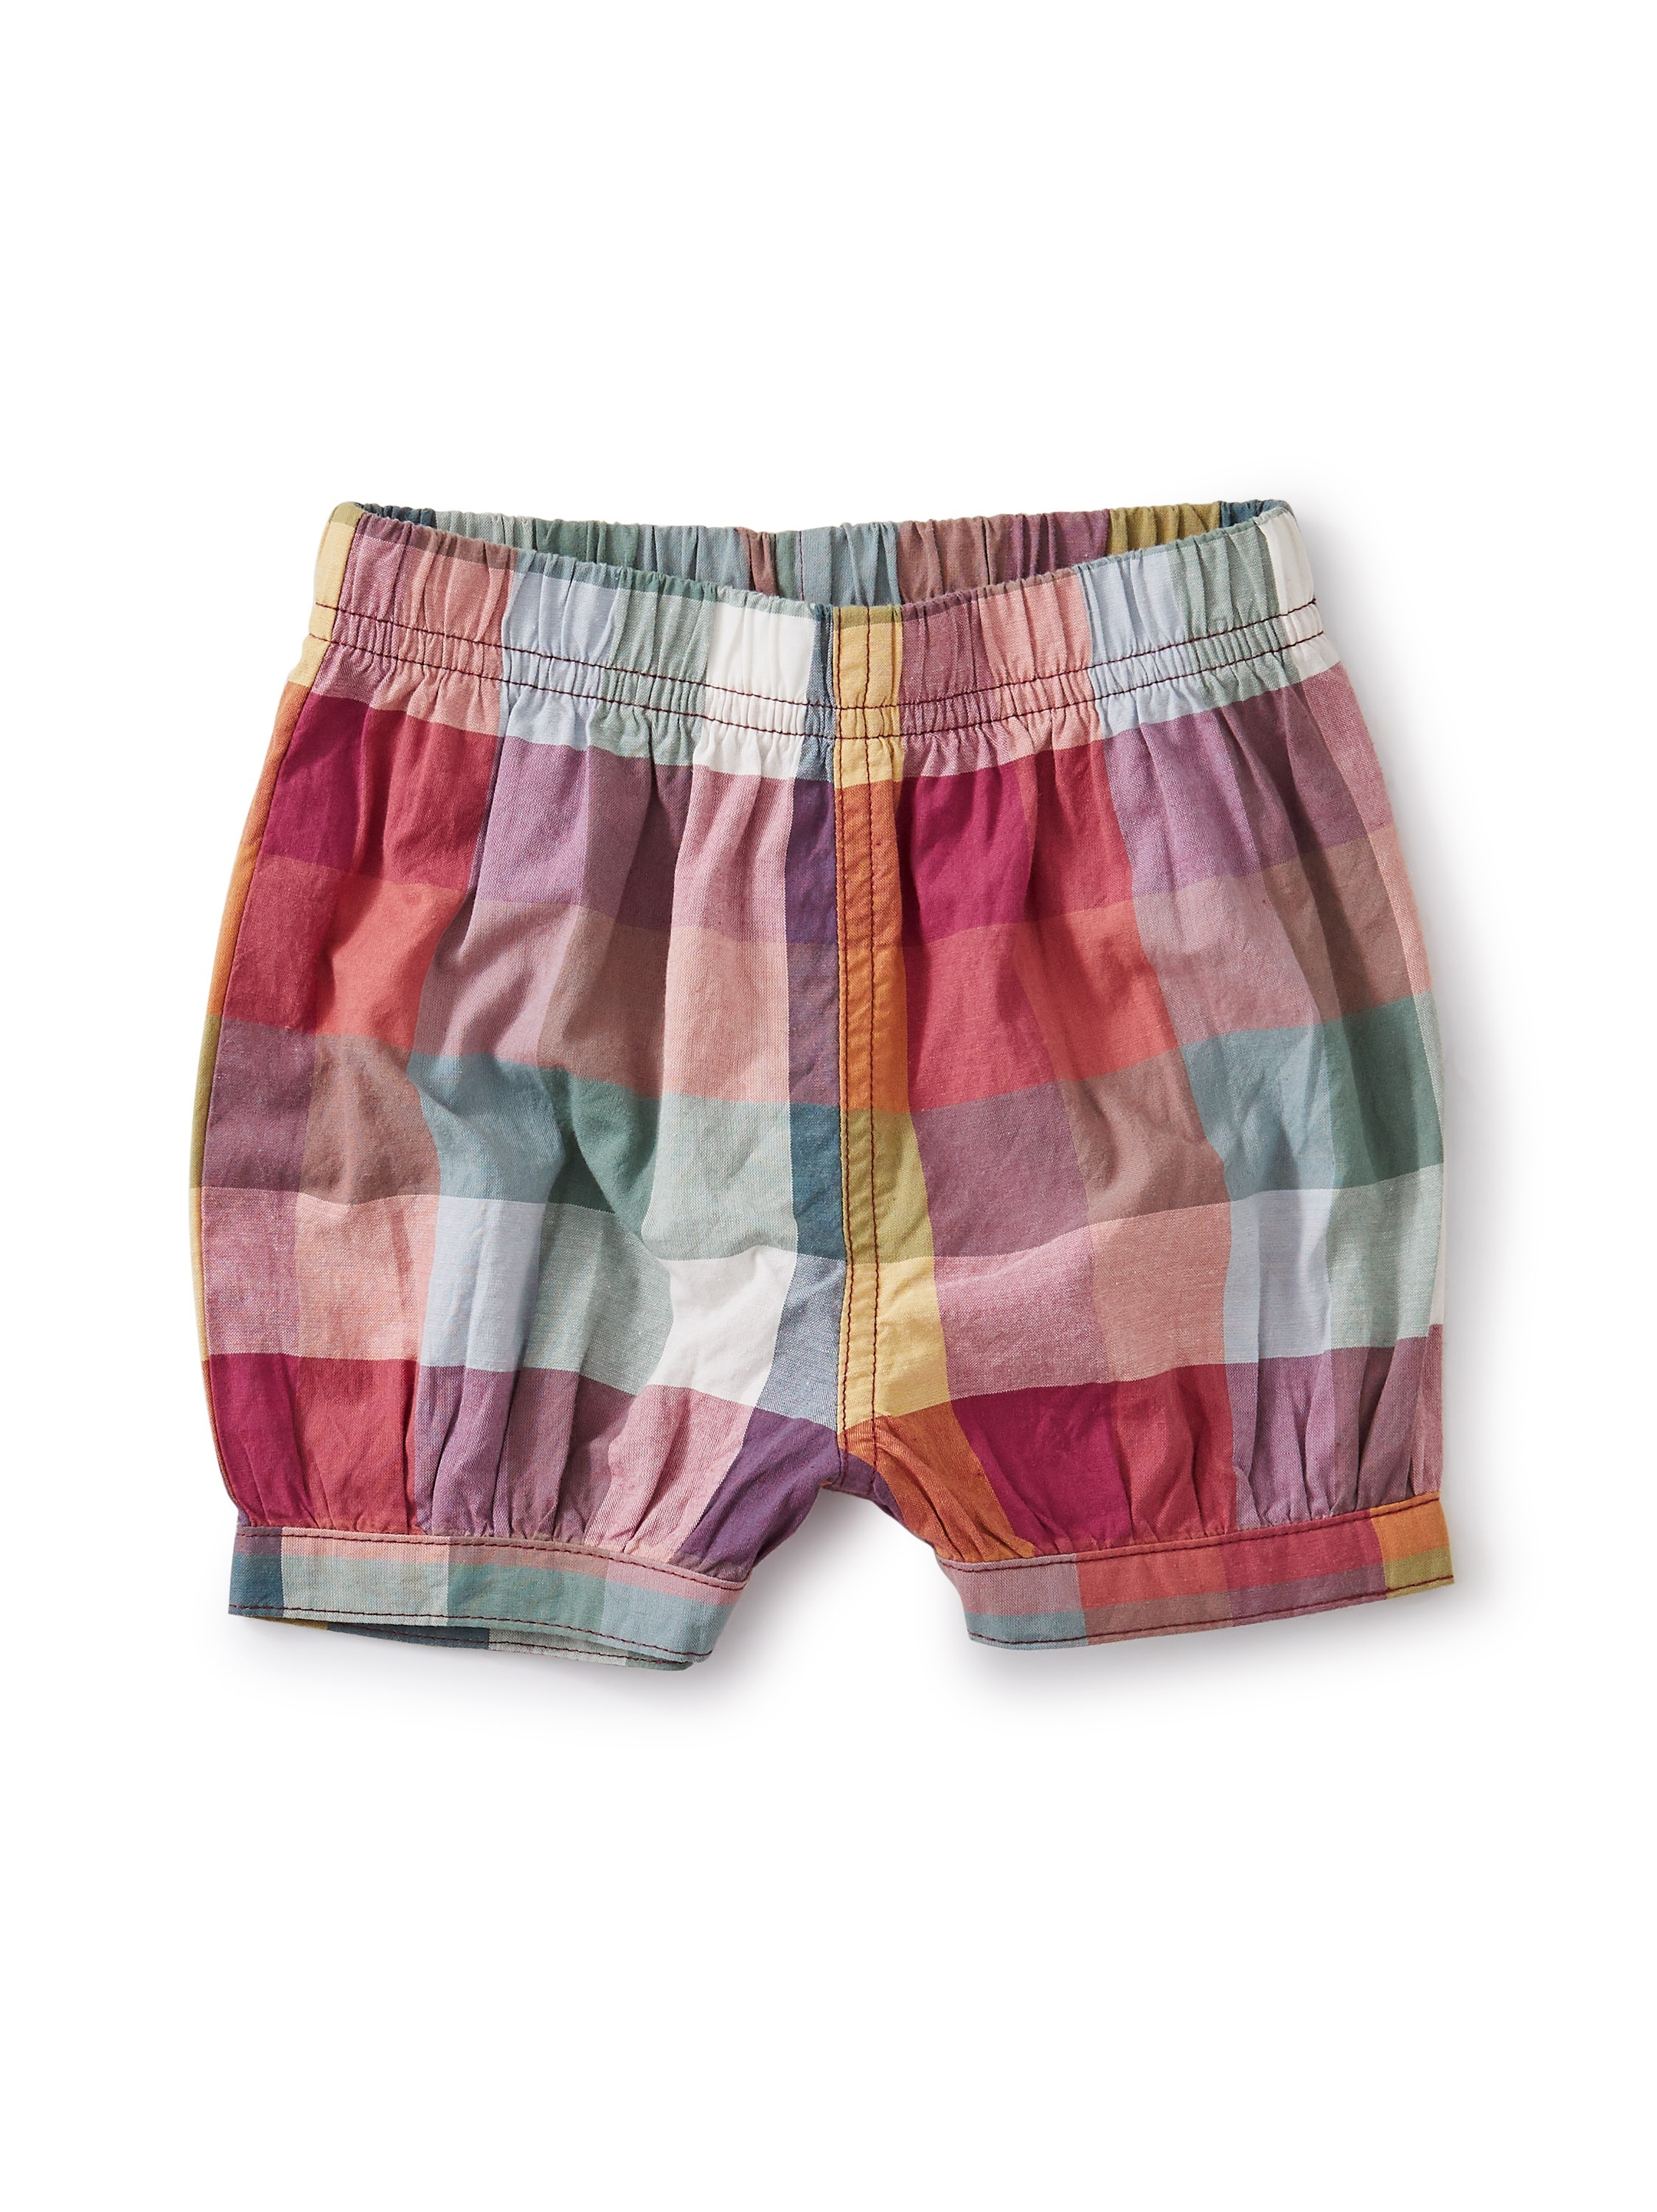 NWT Tea Collection Plaid Size 3T Shorts